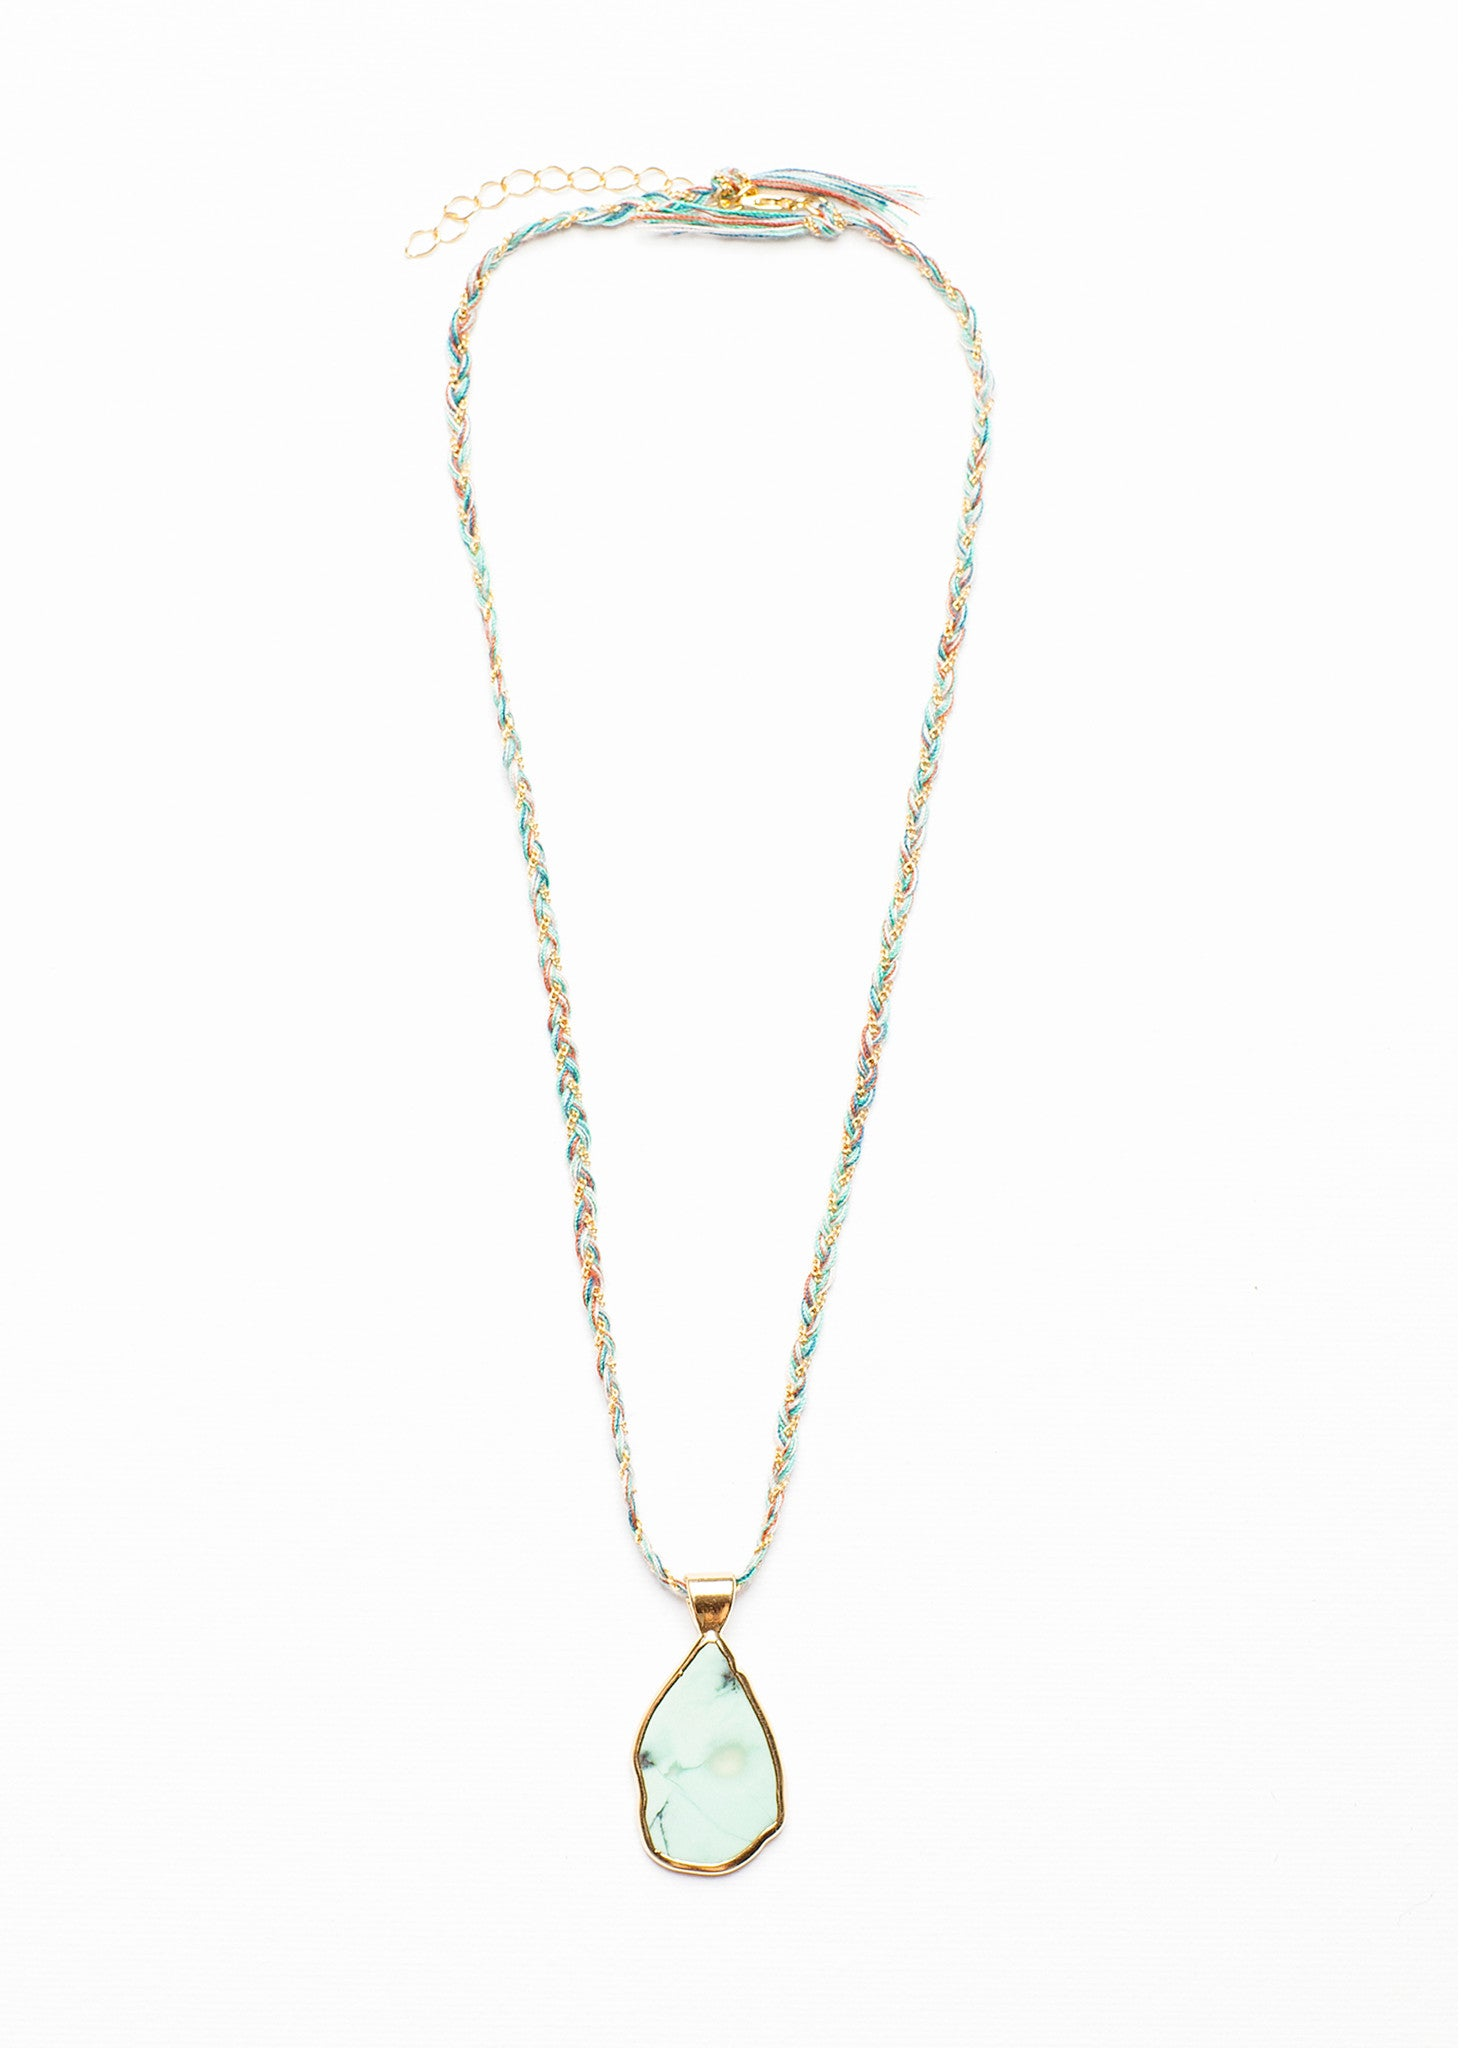 CINTRA CHRYSOPRASE NECKLACE